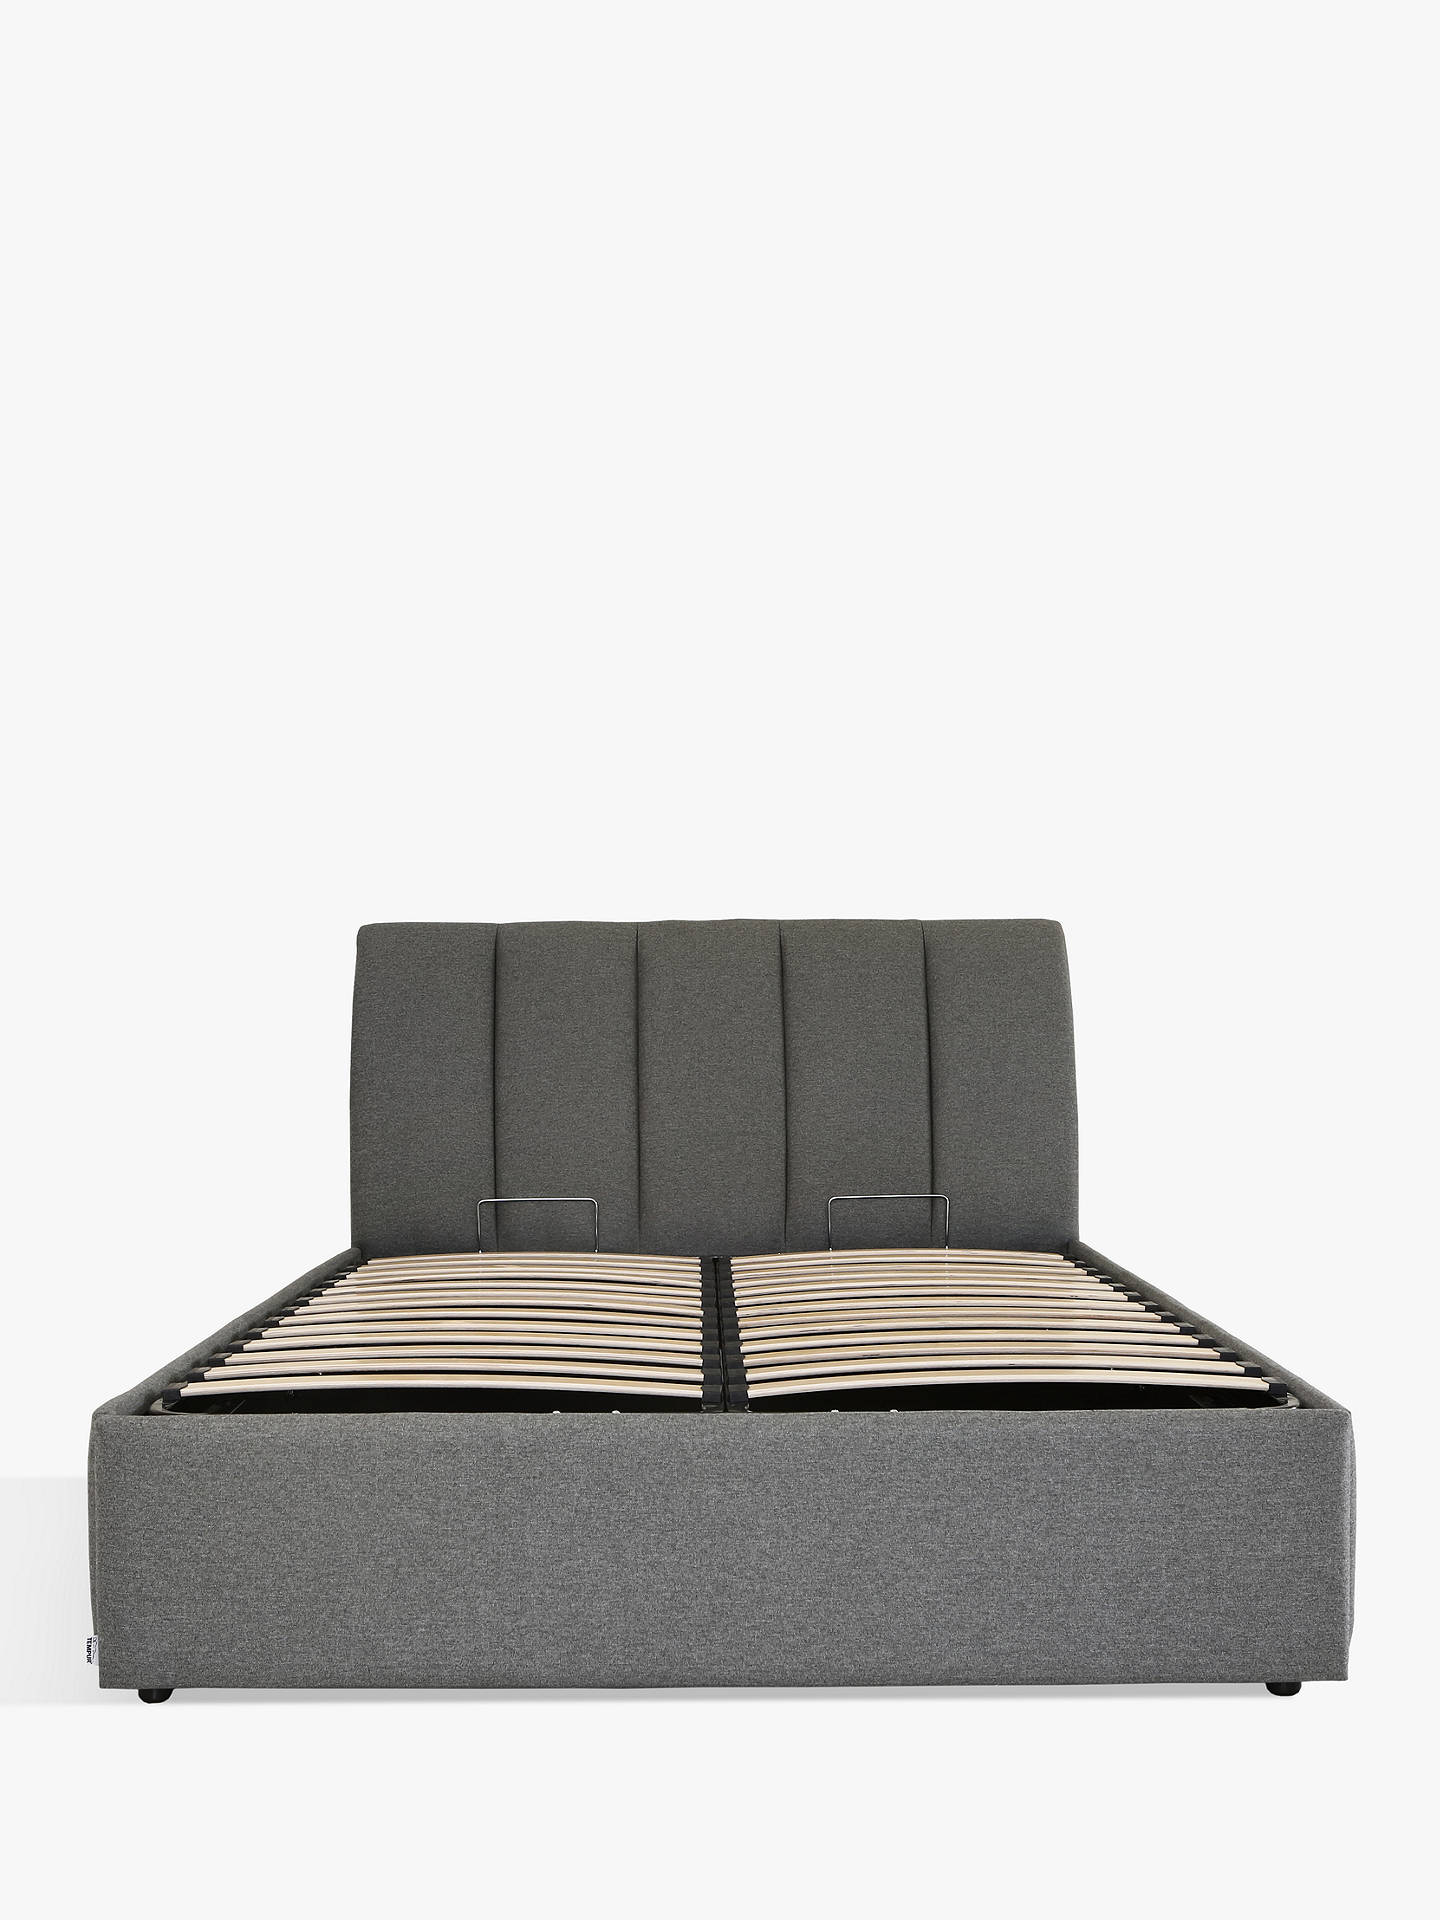 Awesome Tempur Bayonne Ottoman Divan Storage Bed King Size Tweed Grey Creativecarmelina Interior Chair Design Creativecarmelinacom